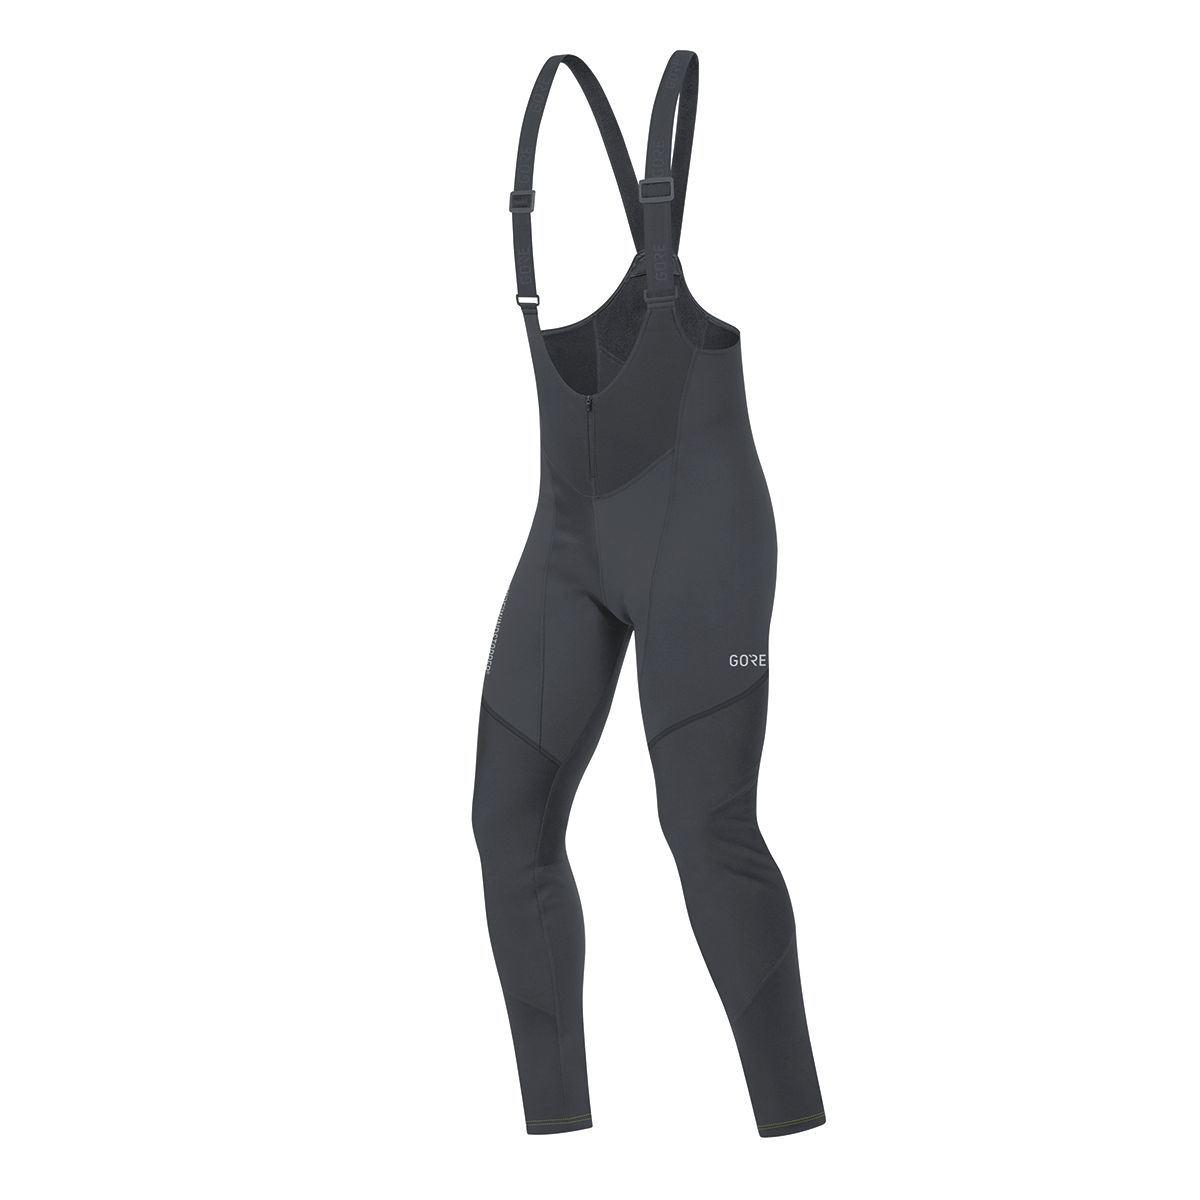 C3 GORE WINDSTOPPER BIB TIGHTS Herren Thermo Trägerhose